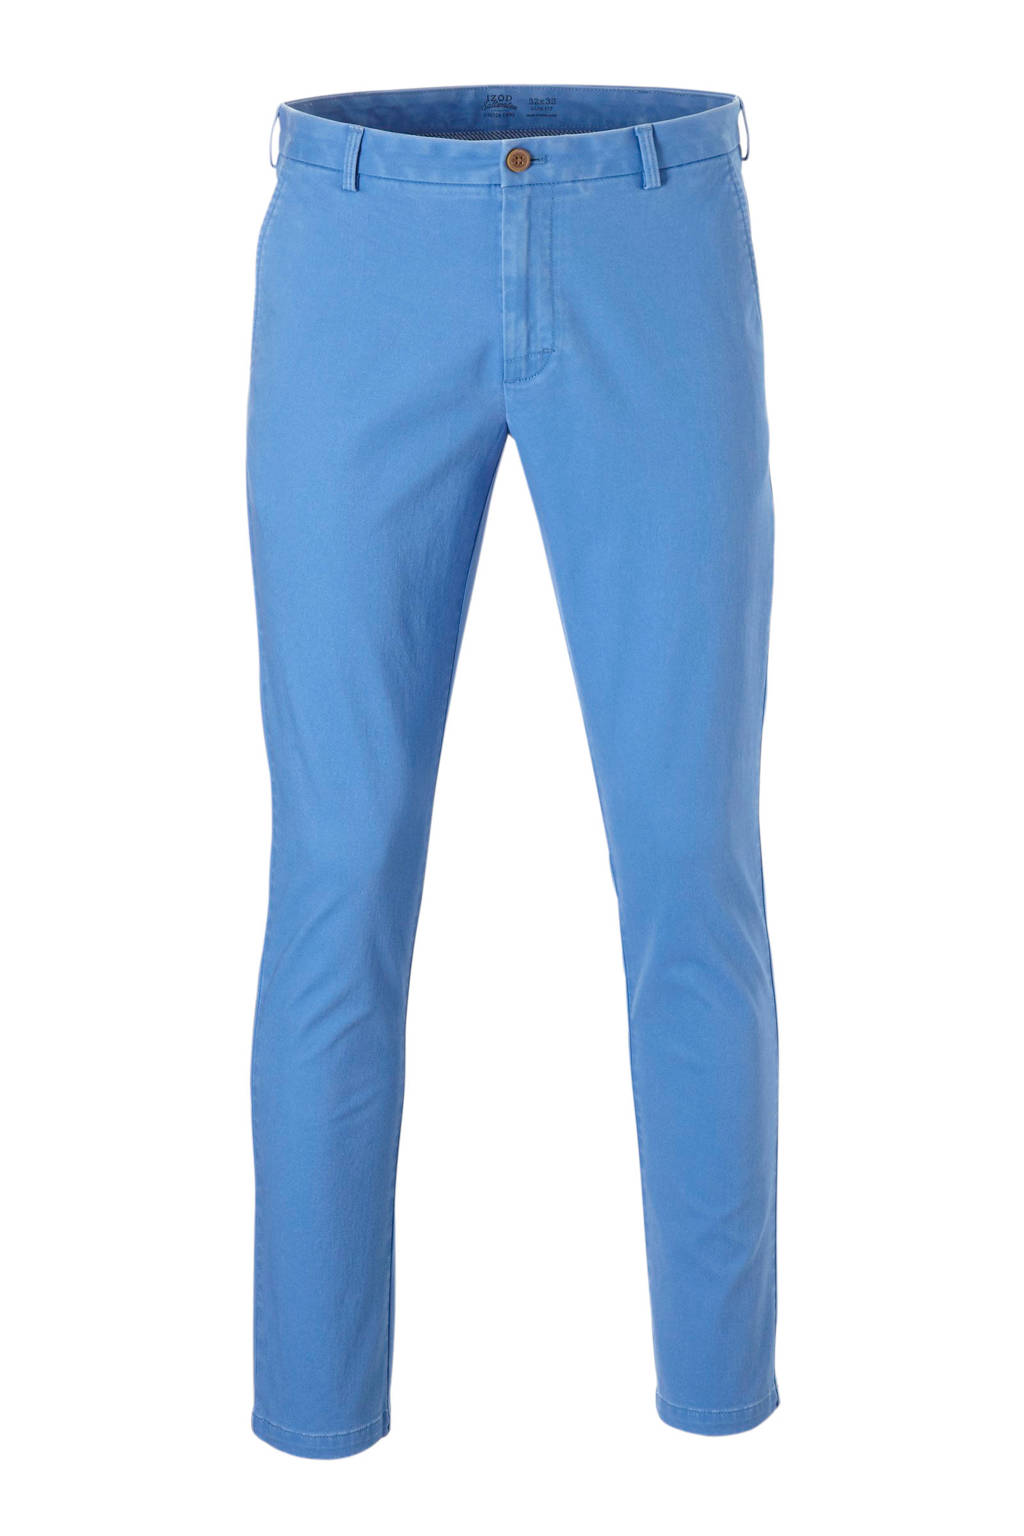 IZOD slim fit chino, Blauw